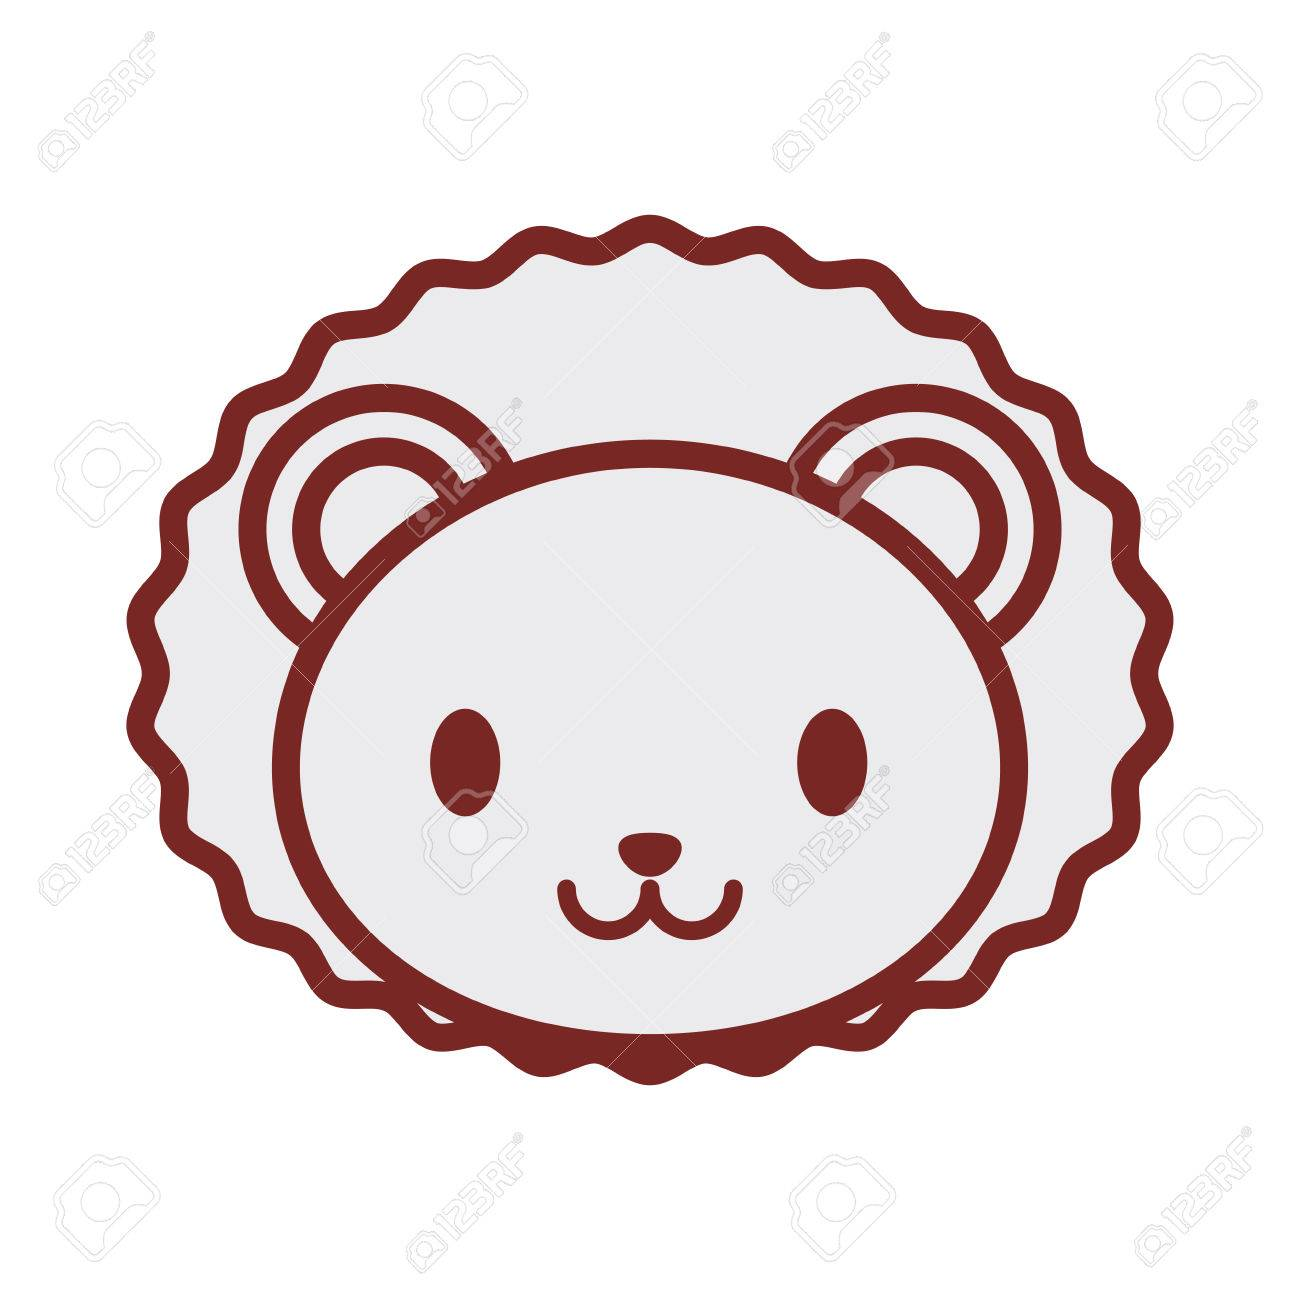 1300x1300 Cute Lion Face Image Vector Illustration Royalty Free Cliparts